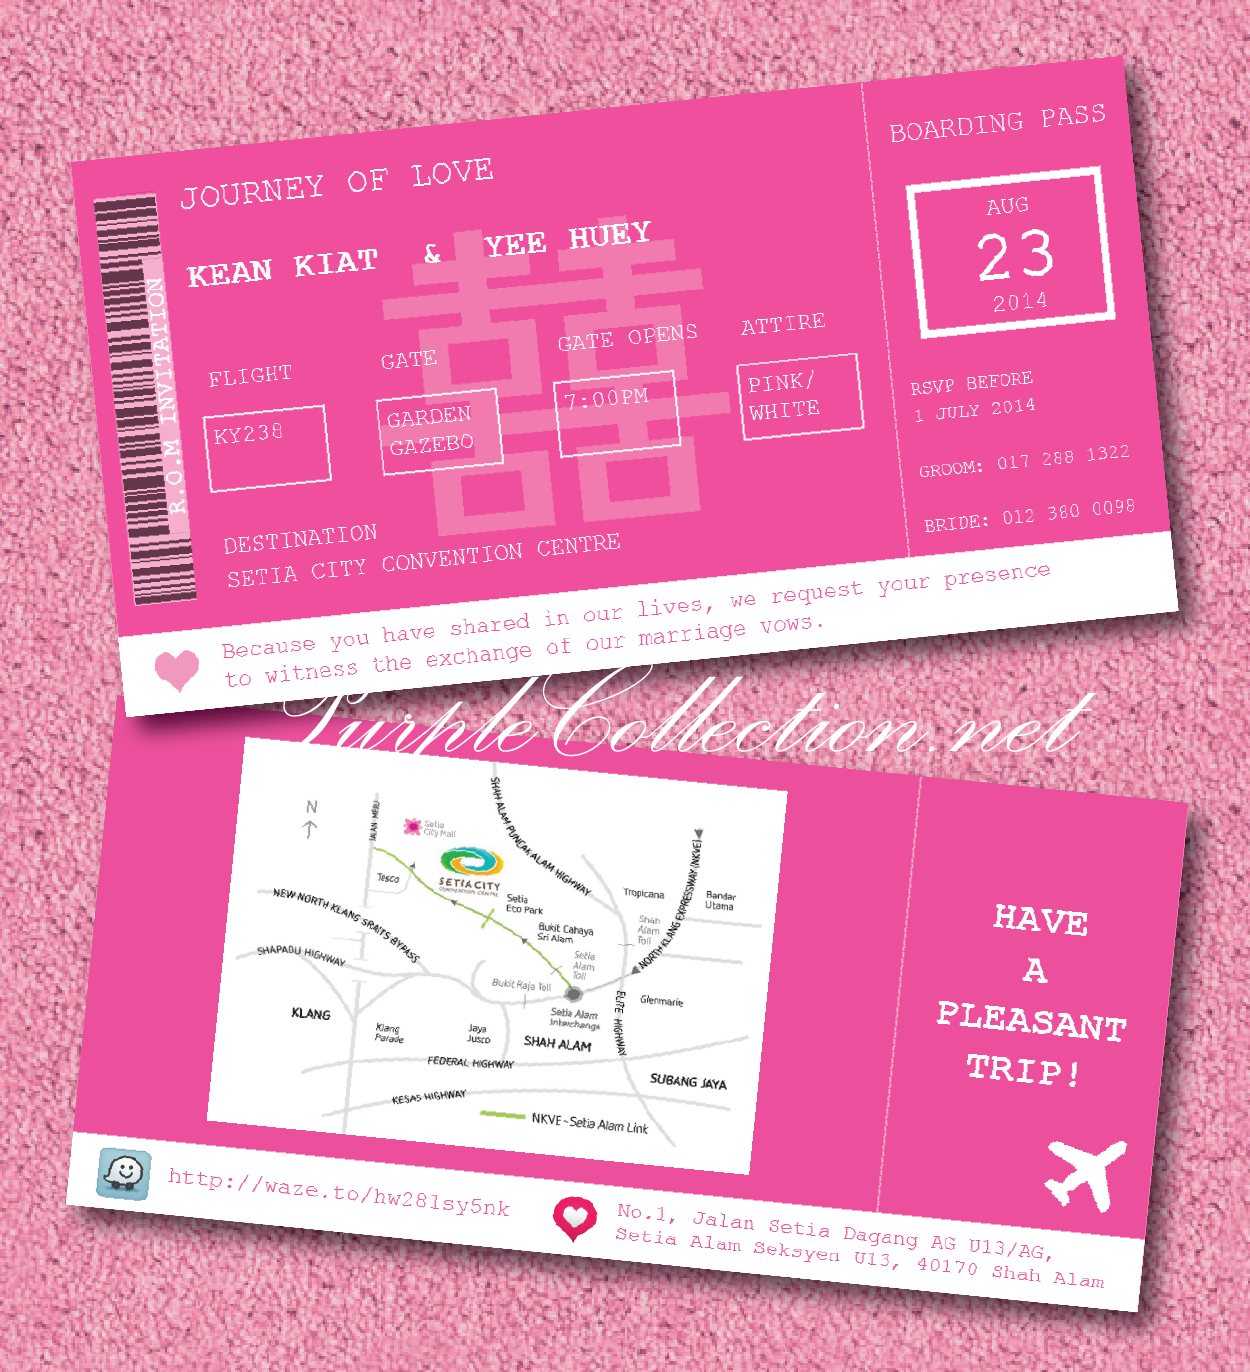 magenta, pink, red, boarding pass, wedding card, invitation, invites, chinese, indian, malay, kad kahwin, murah, cetak, printing, art card 260g, travel, passport, modern, unique, special, custom design, handmade, hand crafted, map, aeroplane, waze cartoon, setia city convention centre, shah alam, klang, selangor, kuala lumpur, KL, JB, johor bahru, Singapore, cheap, online, purchase, buy, sell, portfolio, catalogue, katalog, jual beli, malaysia, australia, envelope, sampul, 2014